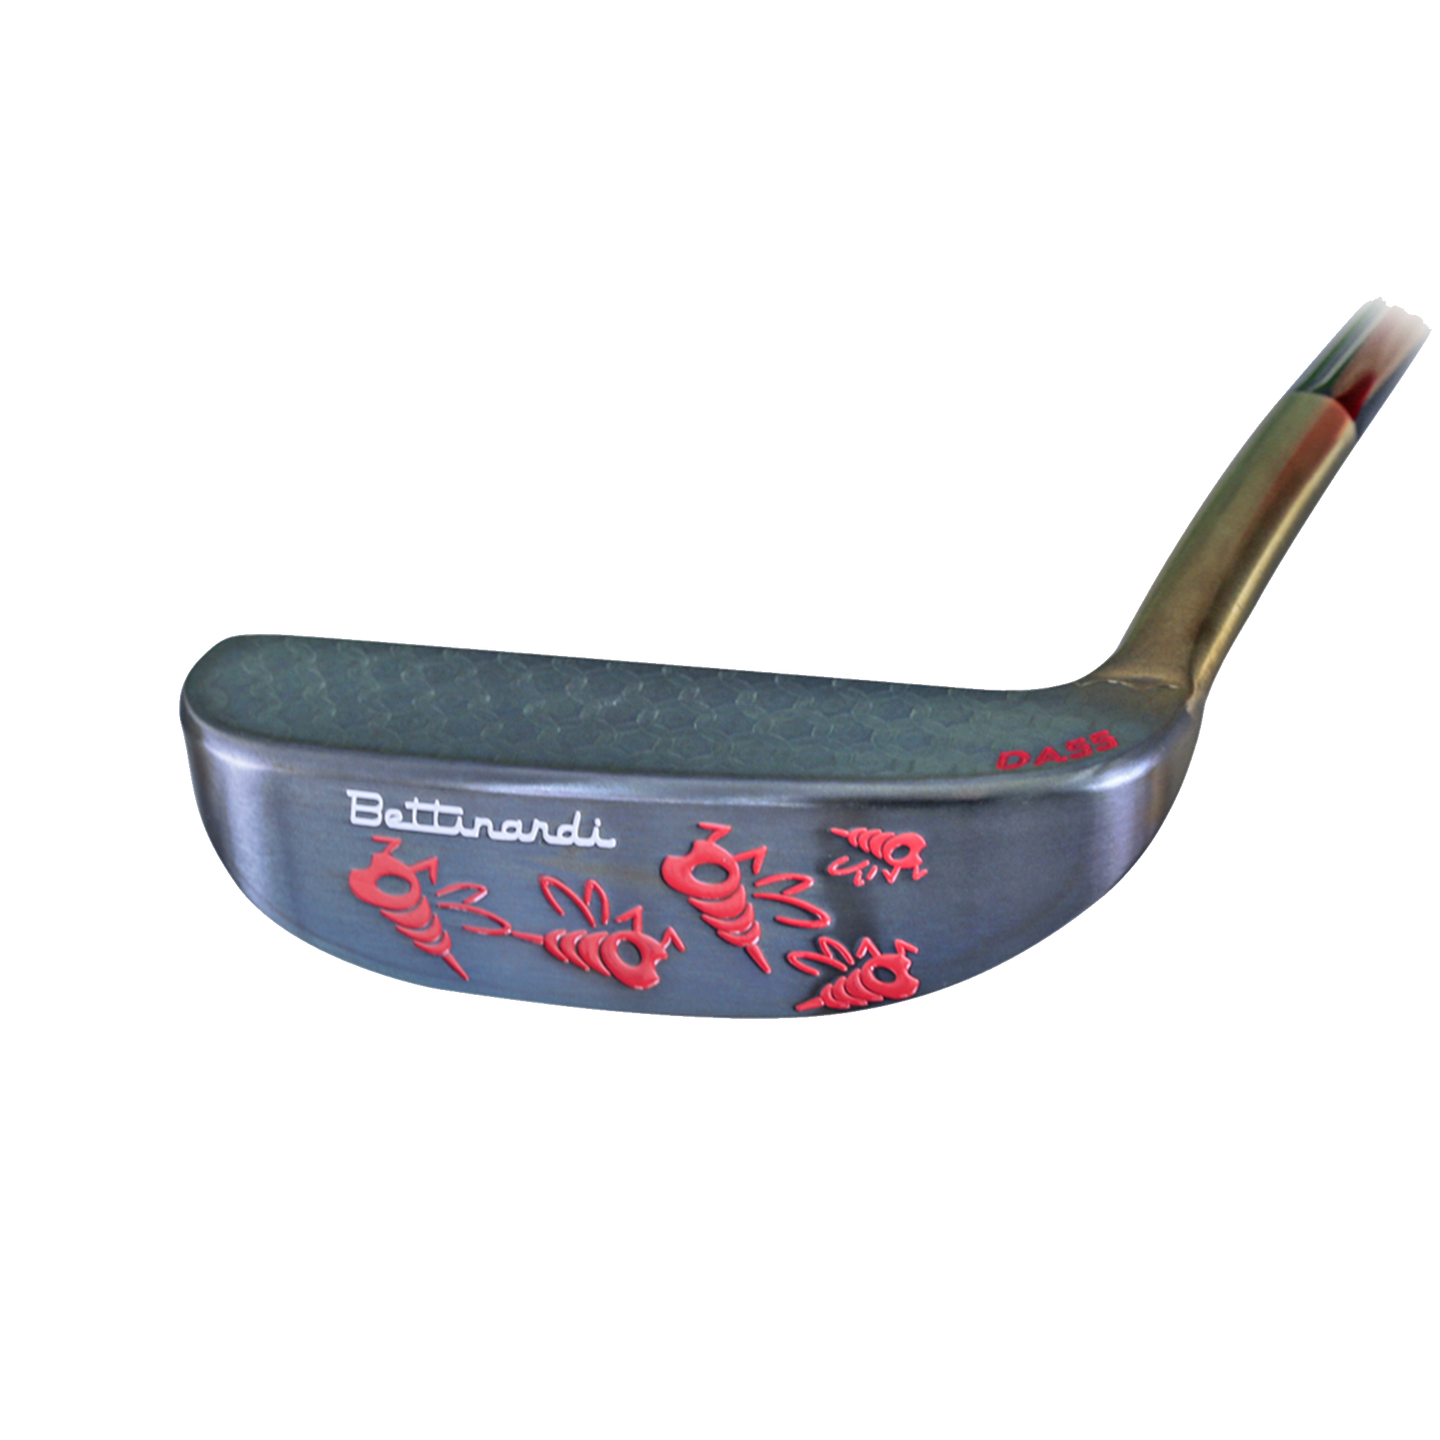 Dancing Stingers BB2 DASS - BettinardiGolf